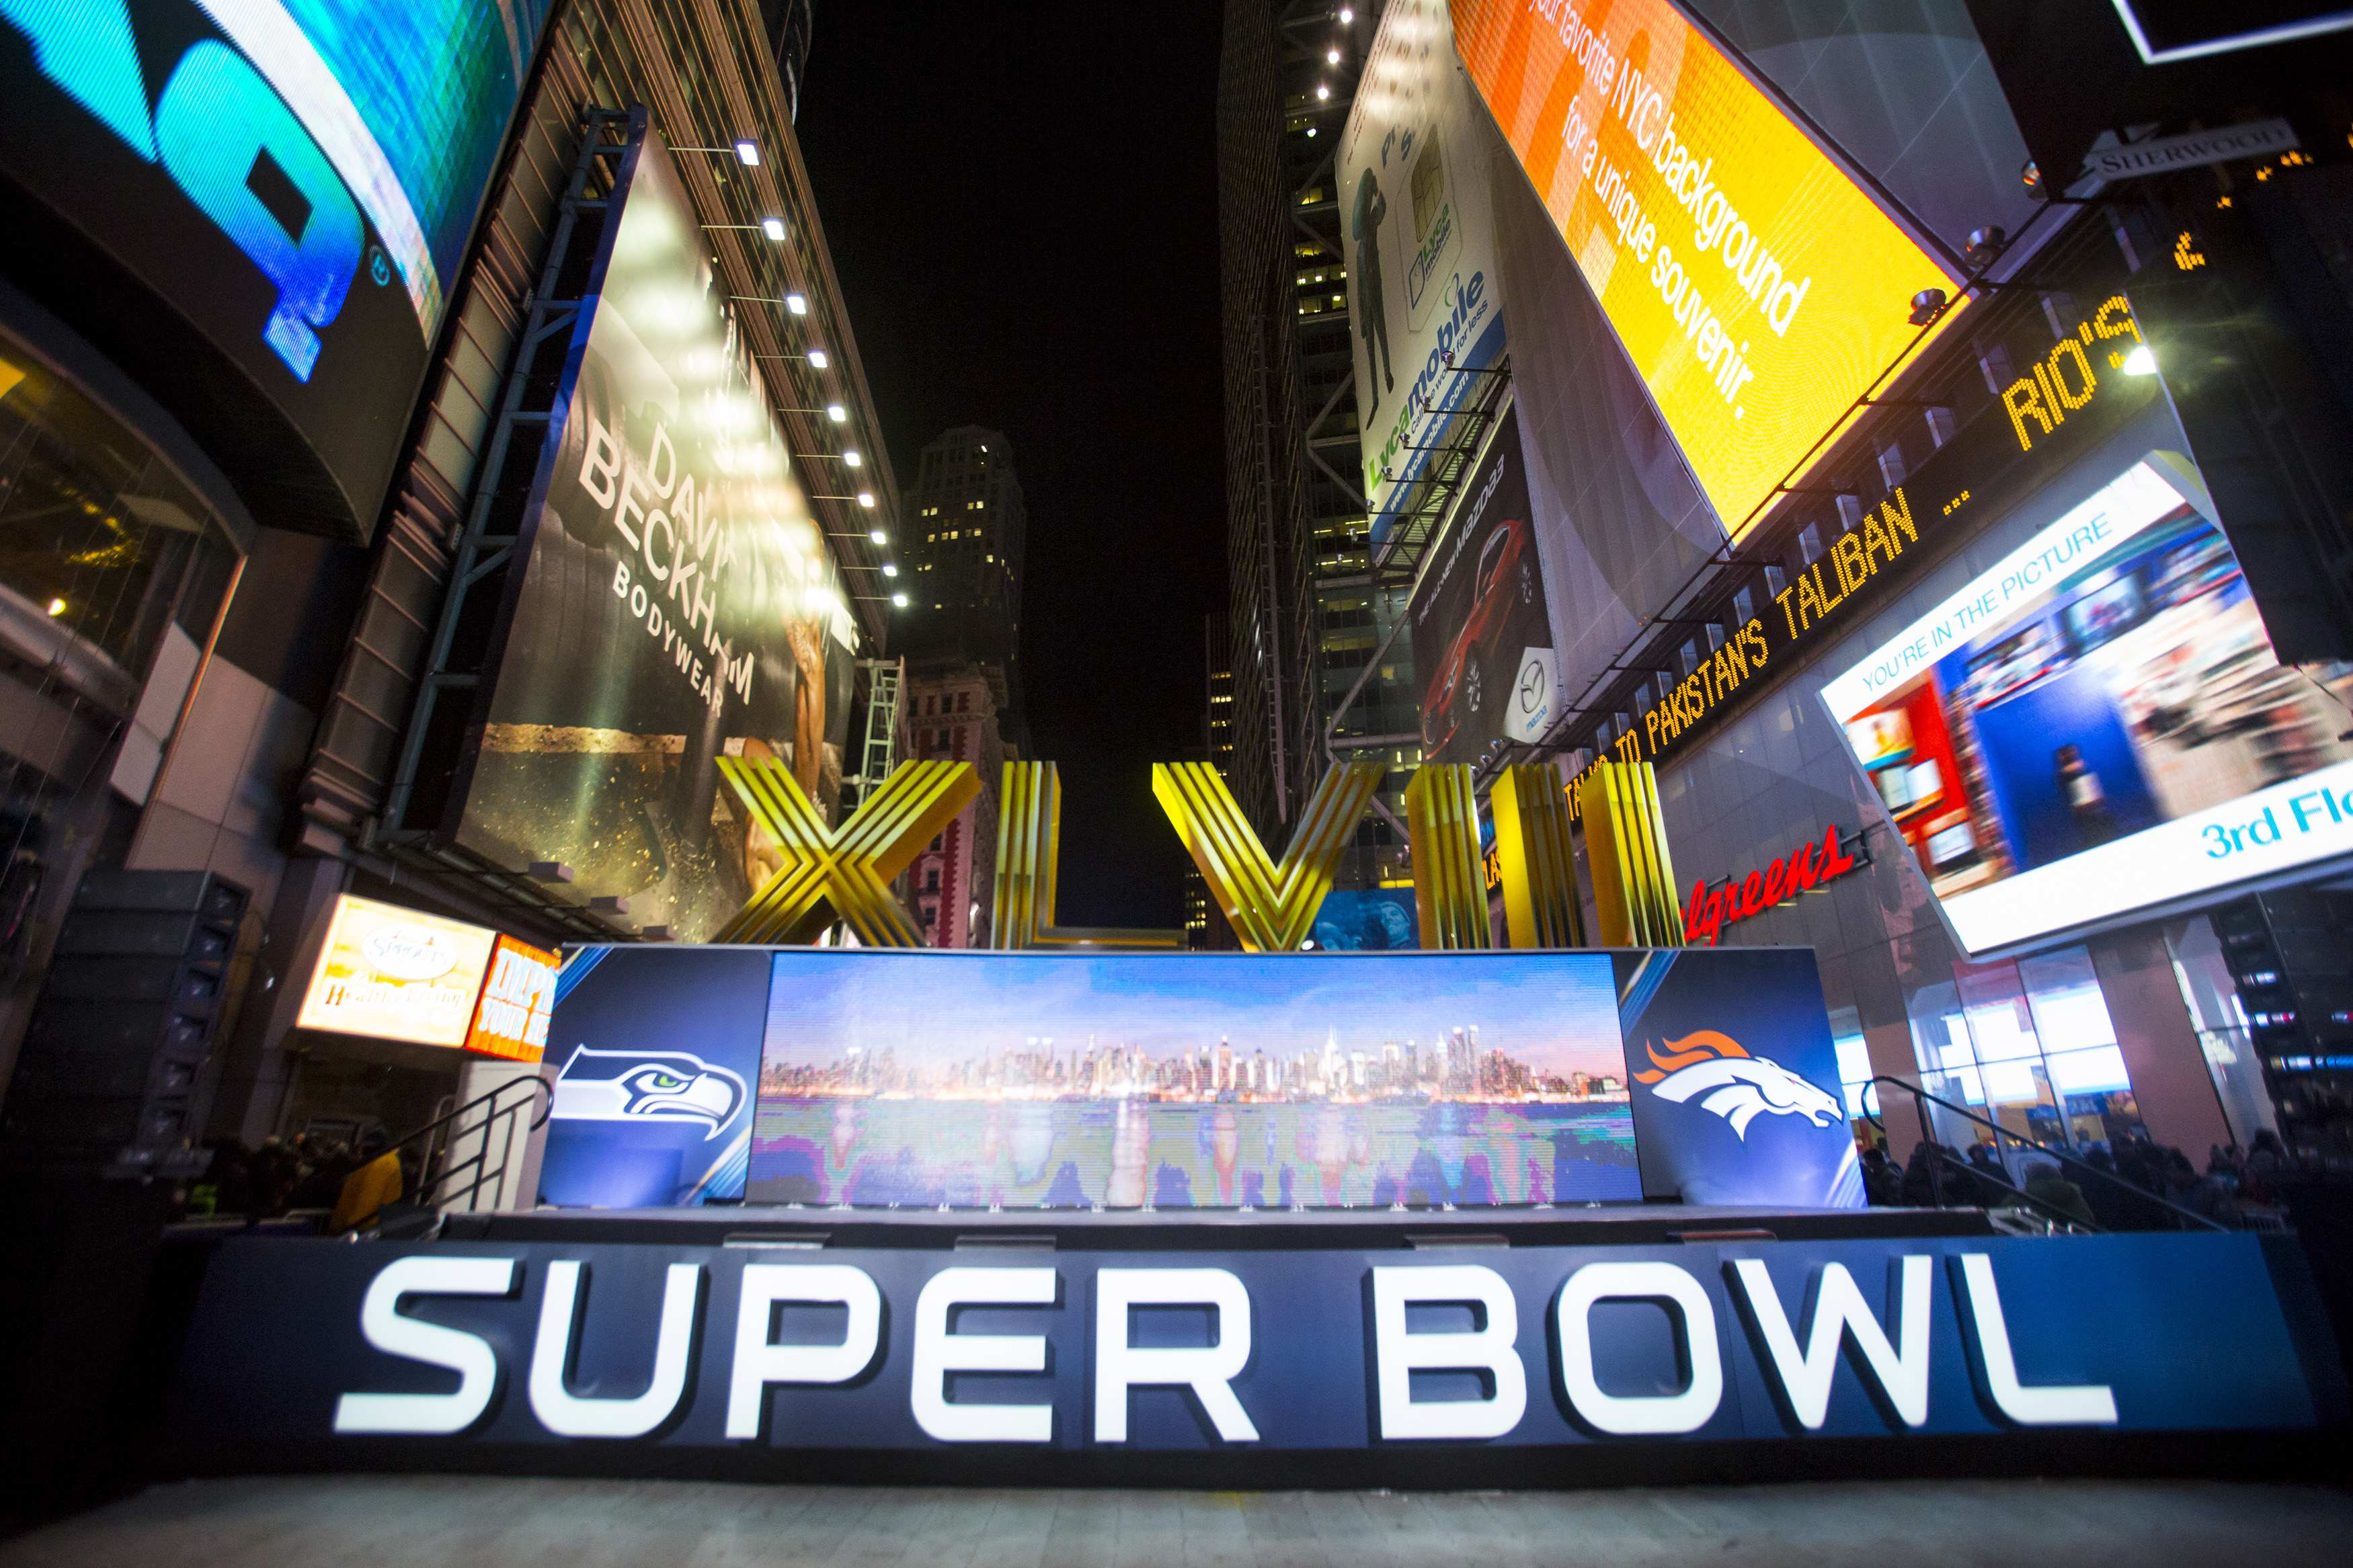 Super Bowl Ratings How Many Countries Will Watch The American Football Game